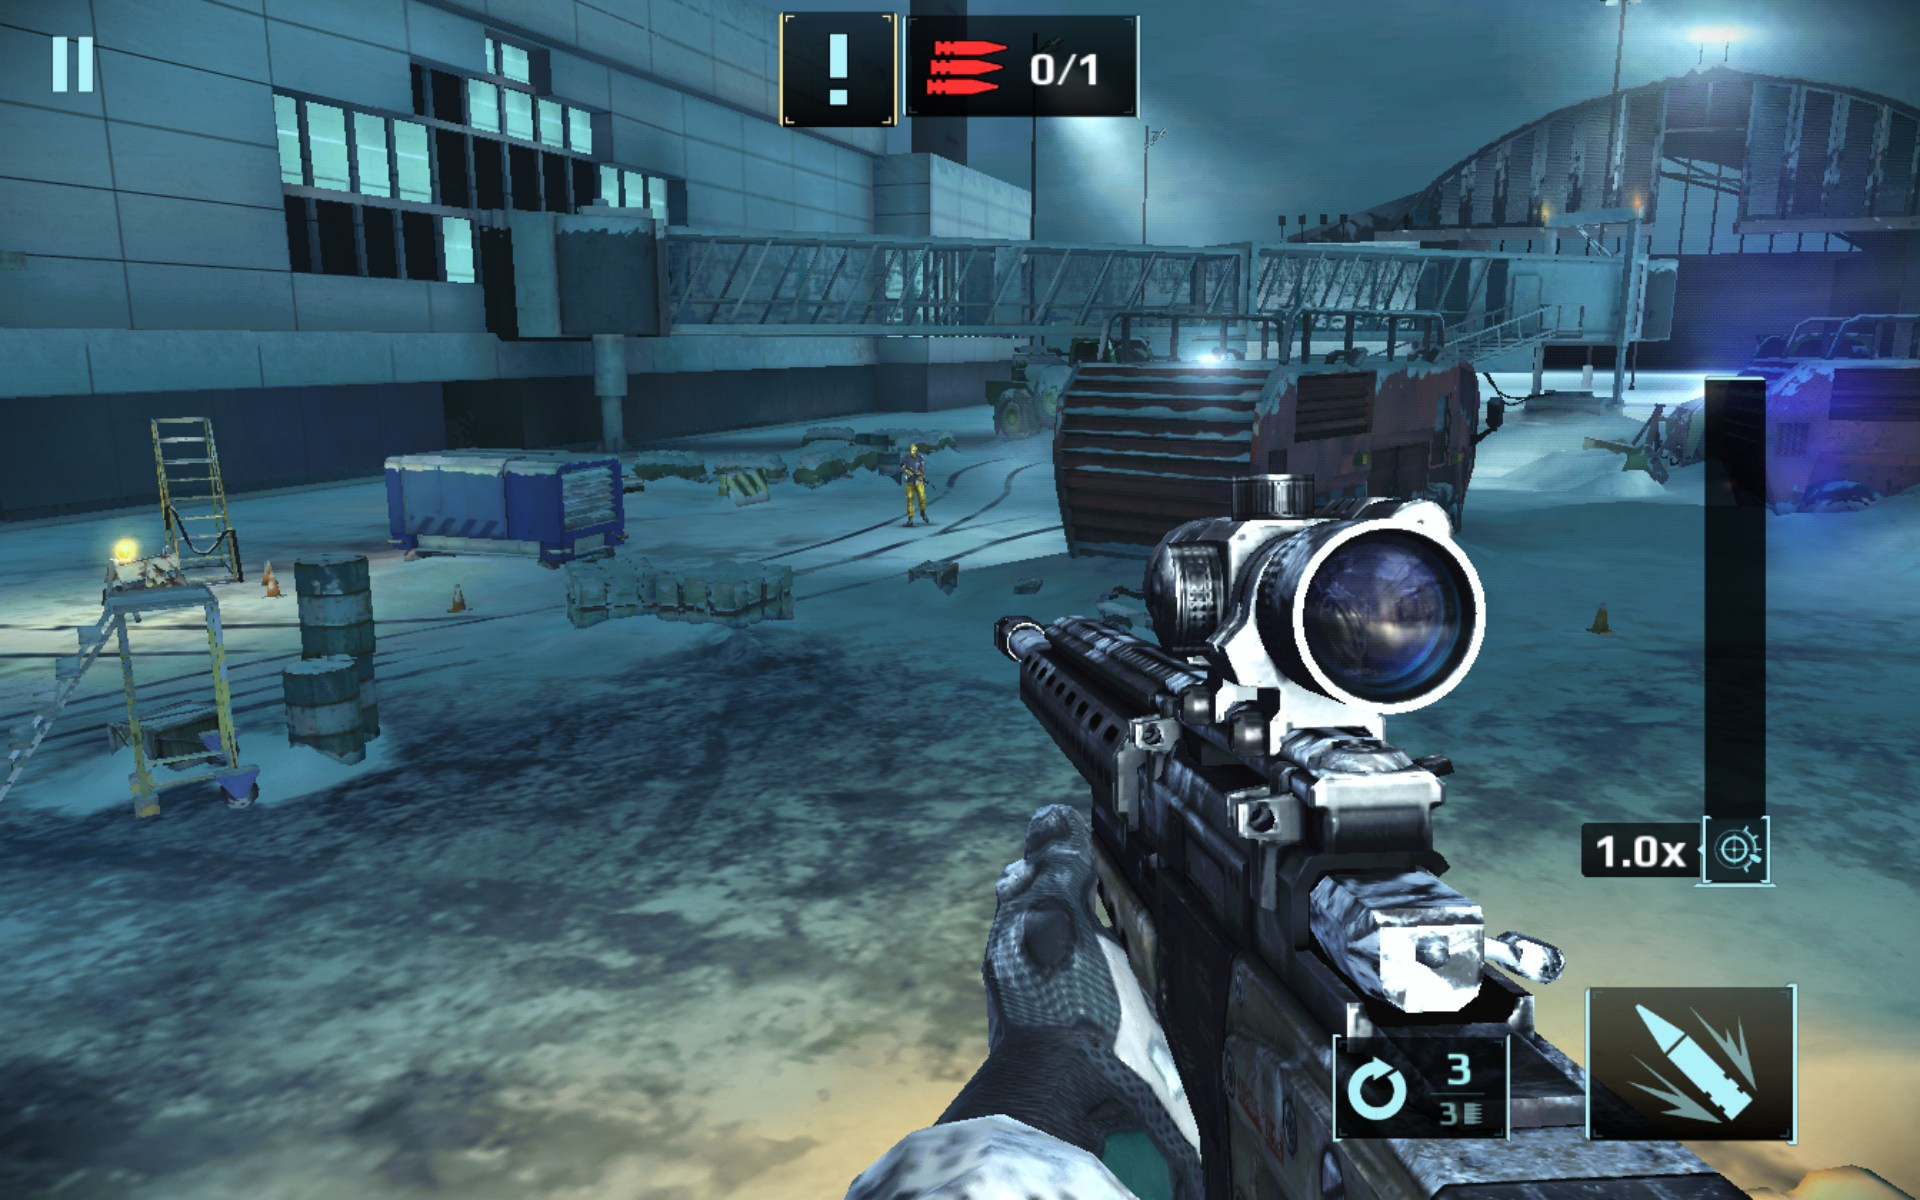 Sniper fury: best shooter game for samsung galaxy tab 3 7. 0 2018.